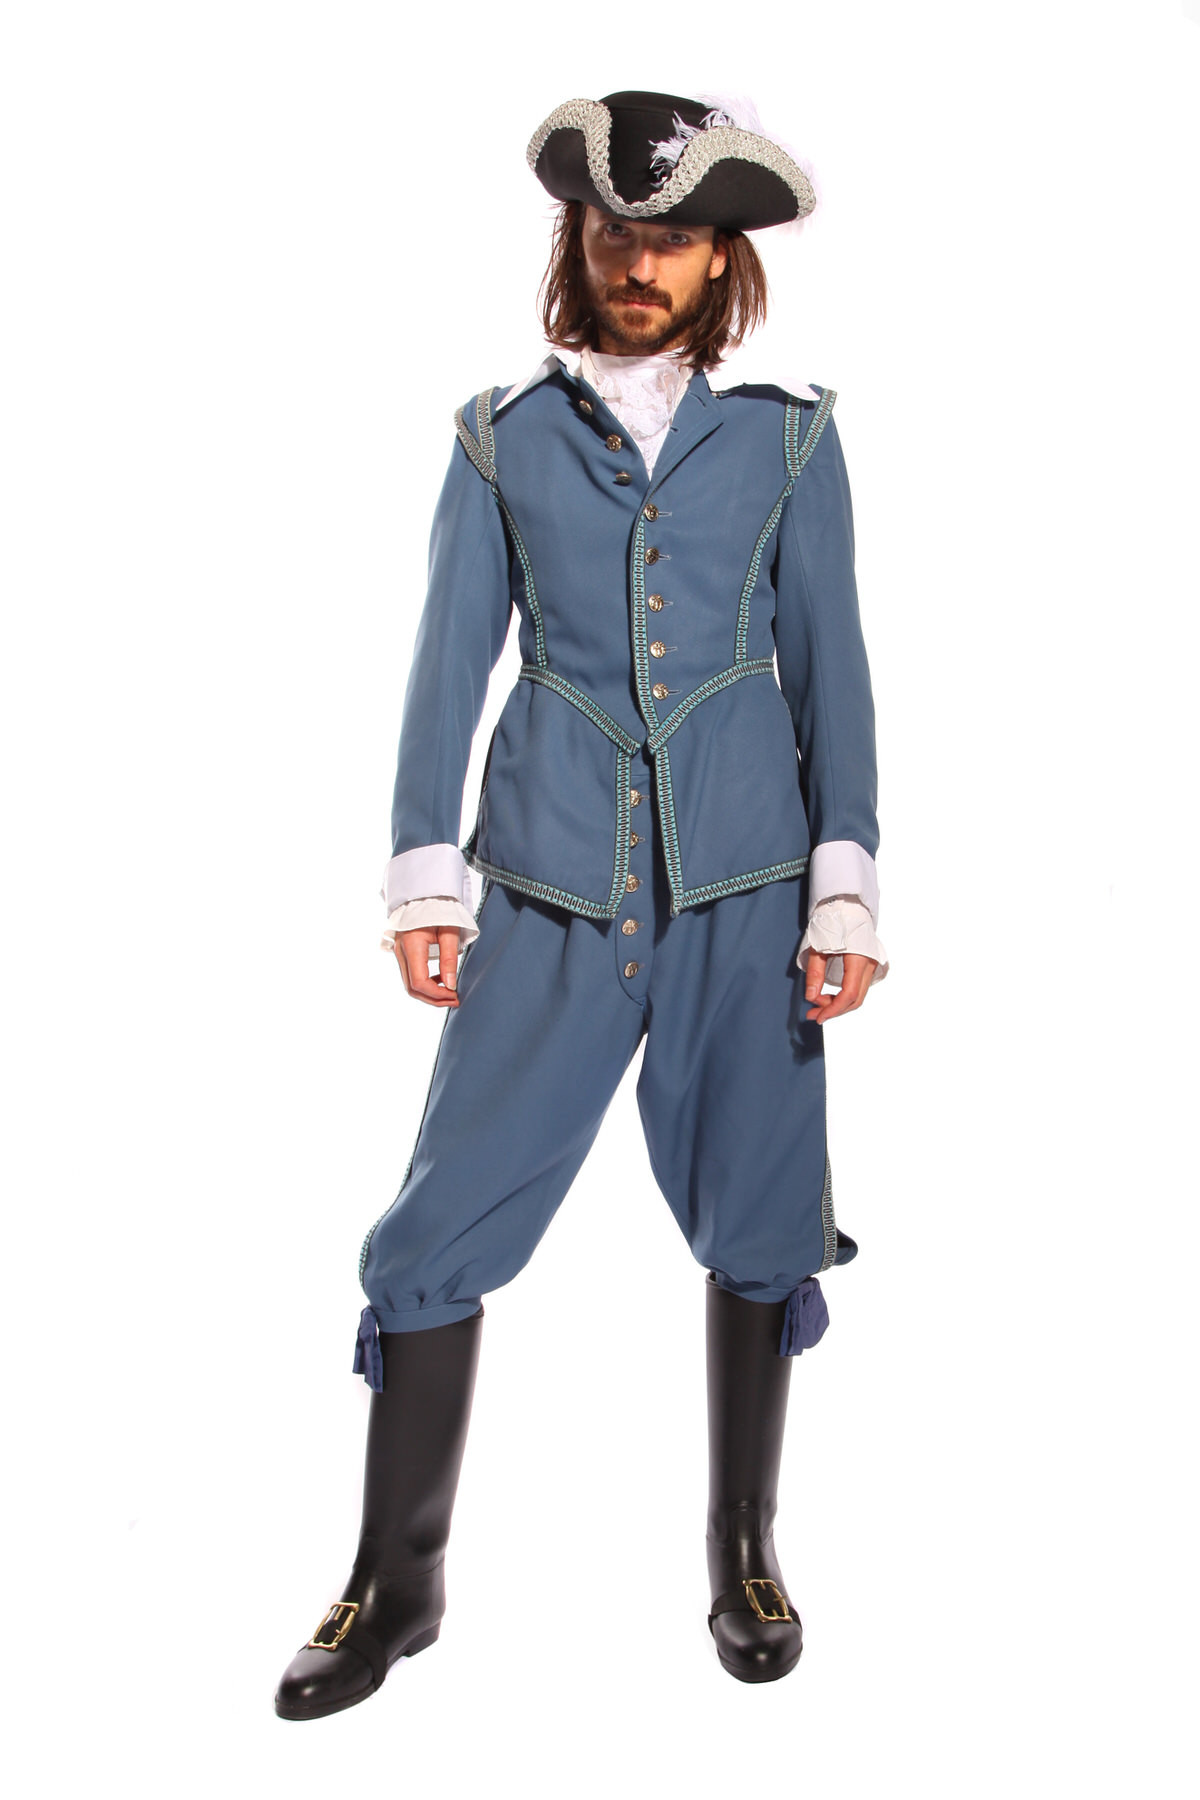 CAVALIER STUART GENT BLUE COSTUME W RIDING BOOTS